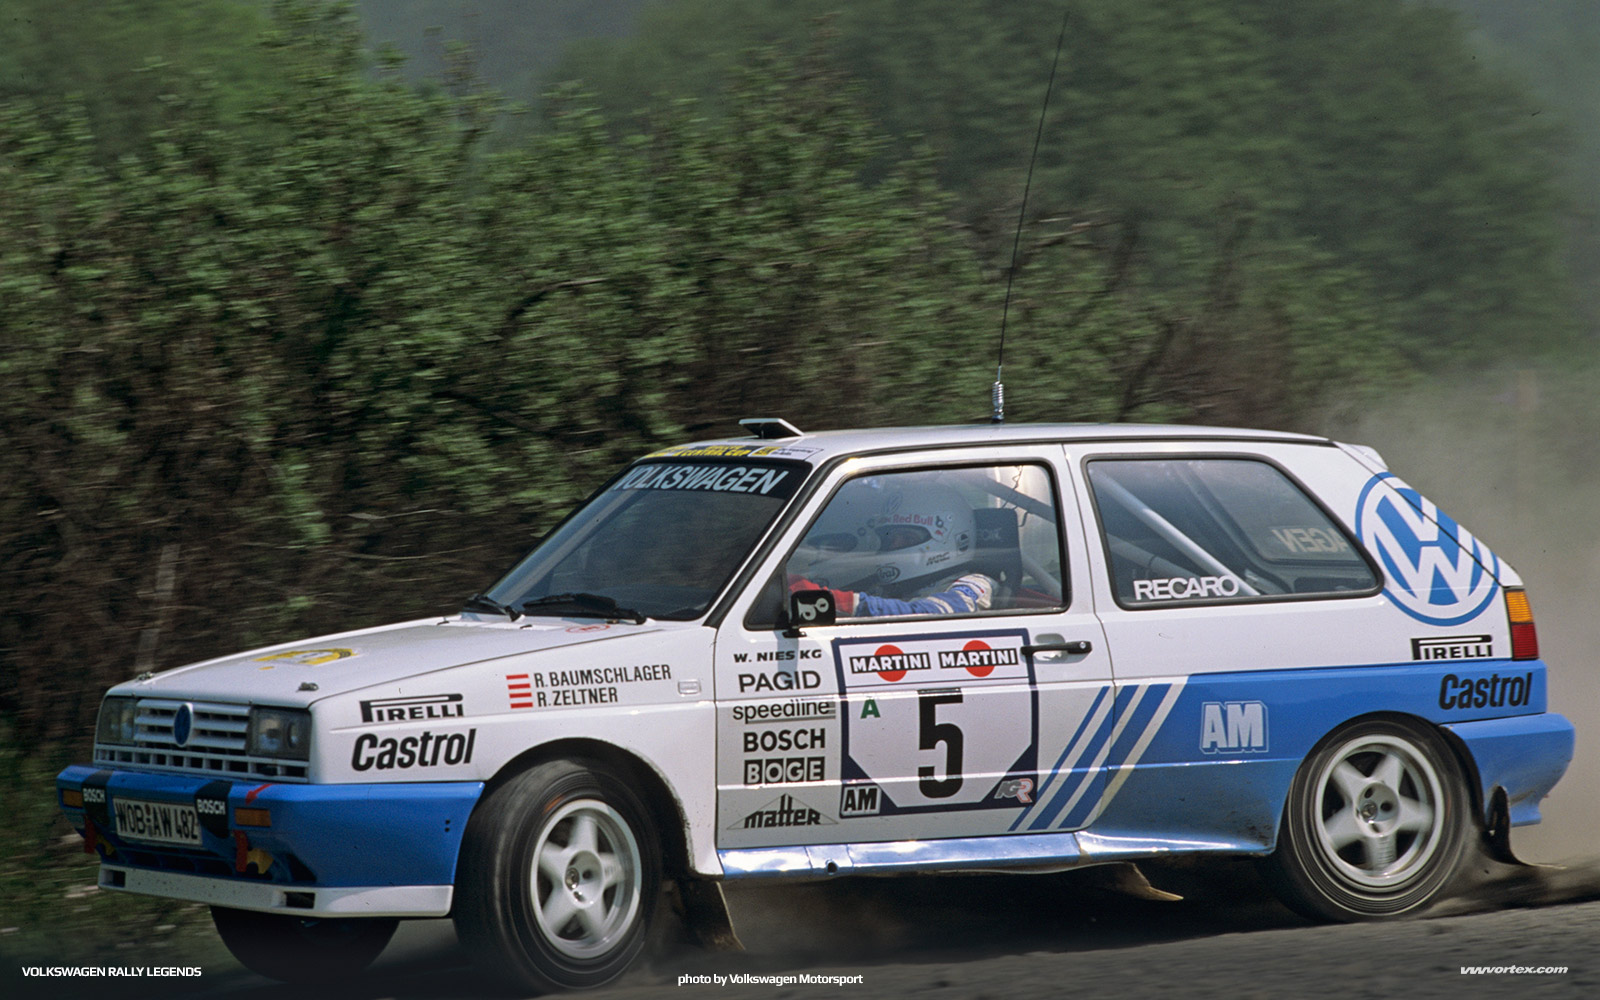 volkswagen-rally-legends-368